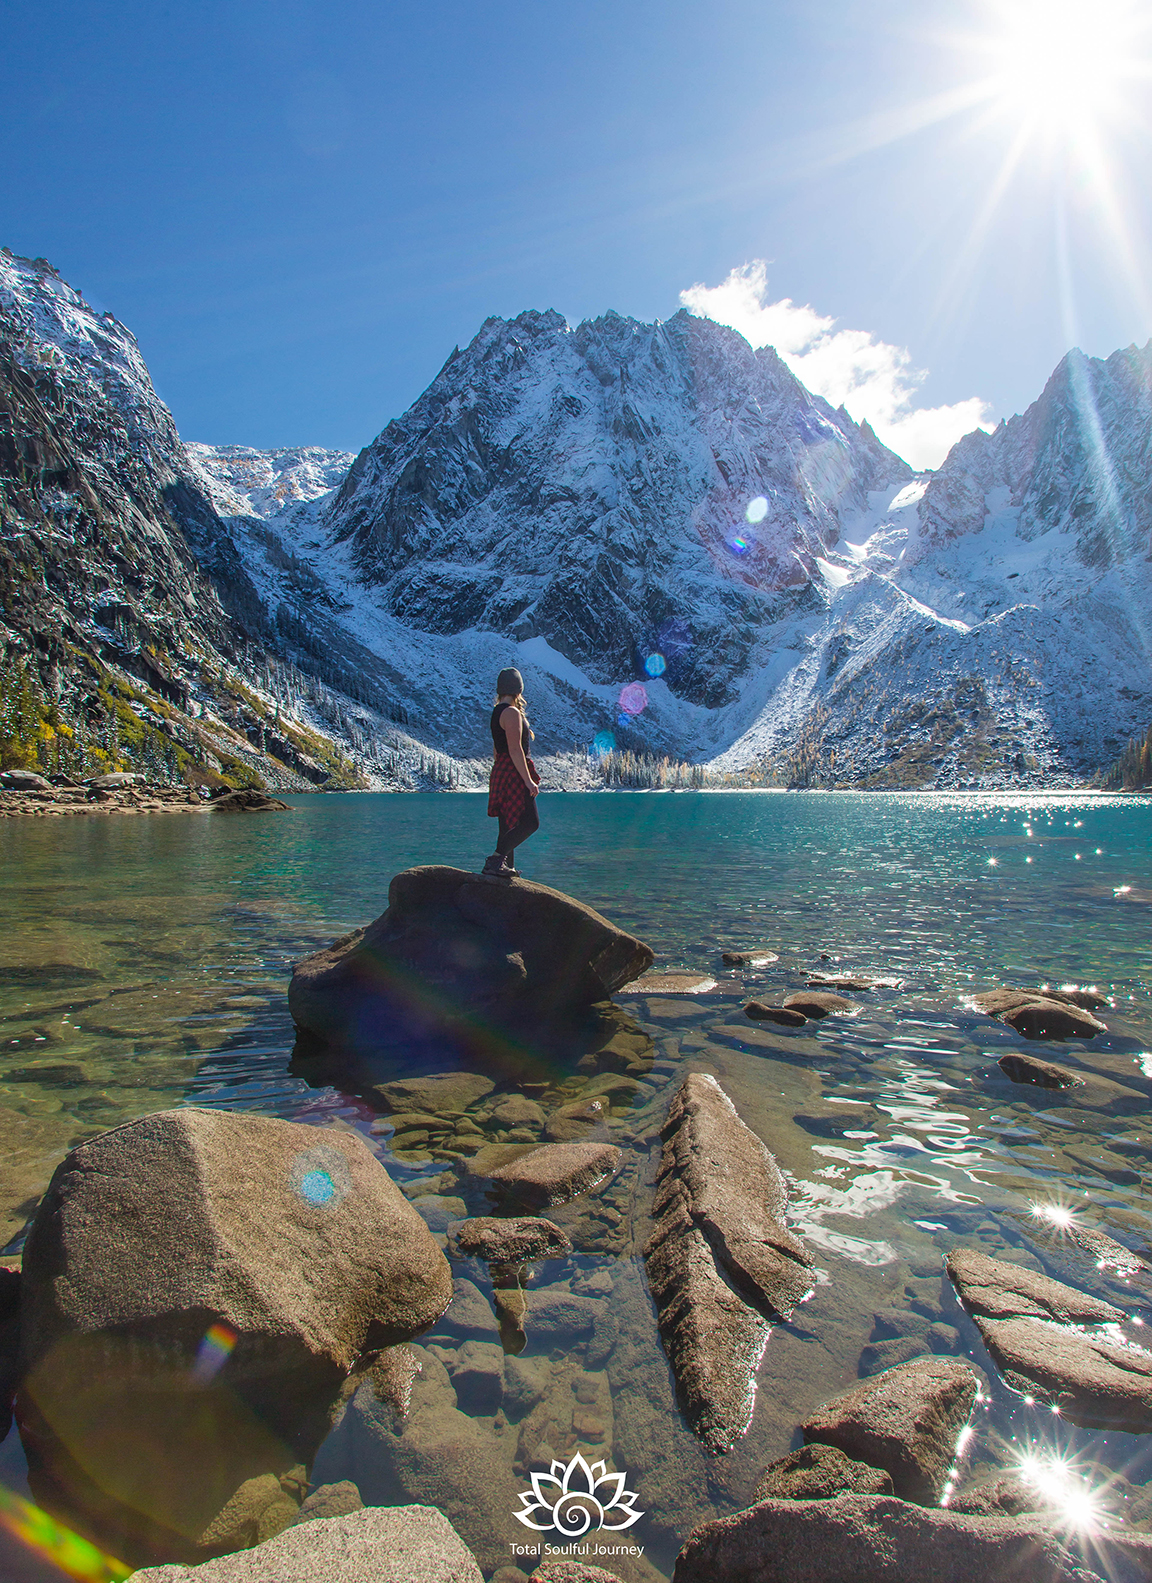 May nature inspire you with its magnificence! Hiking at Colchuck Lake - Photography by Paul Garrett